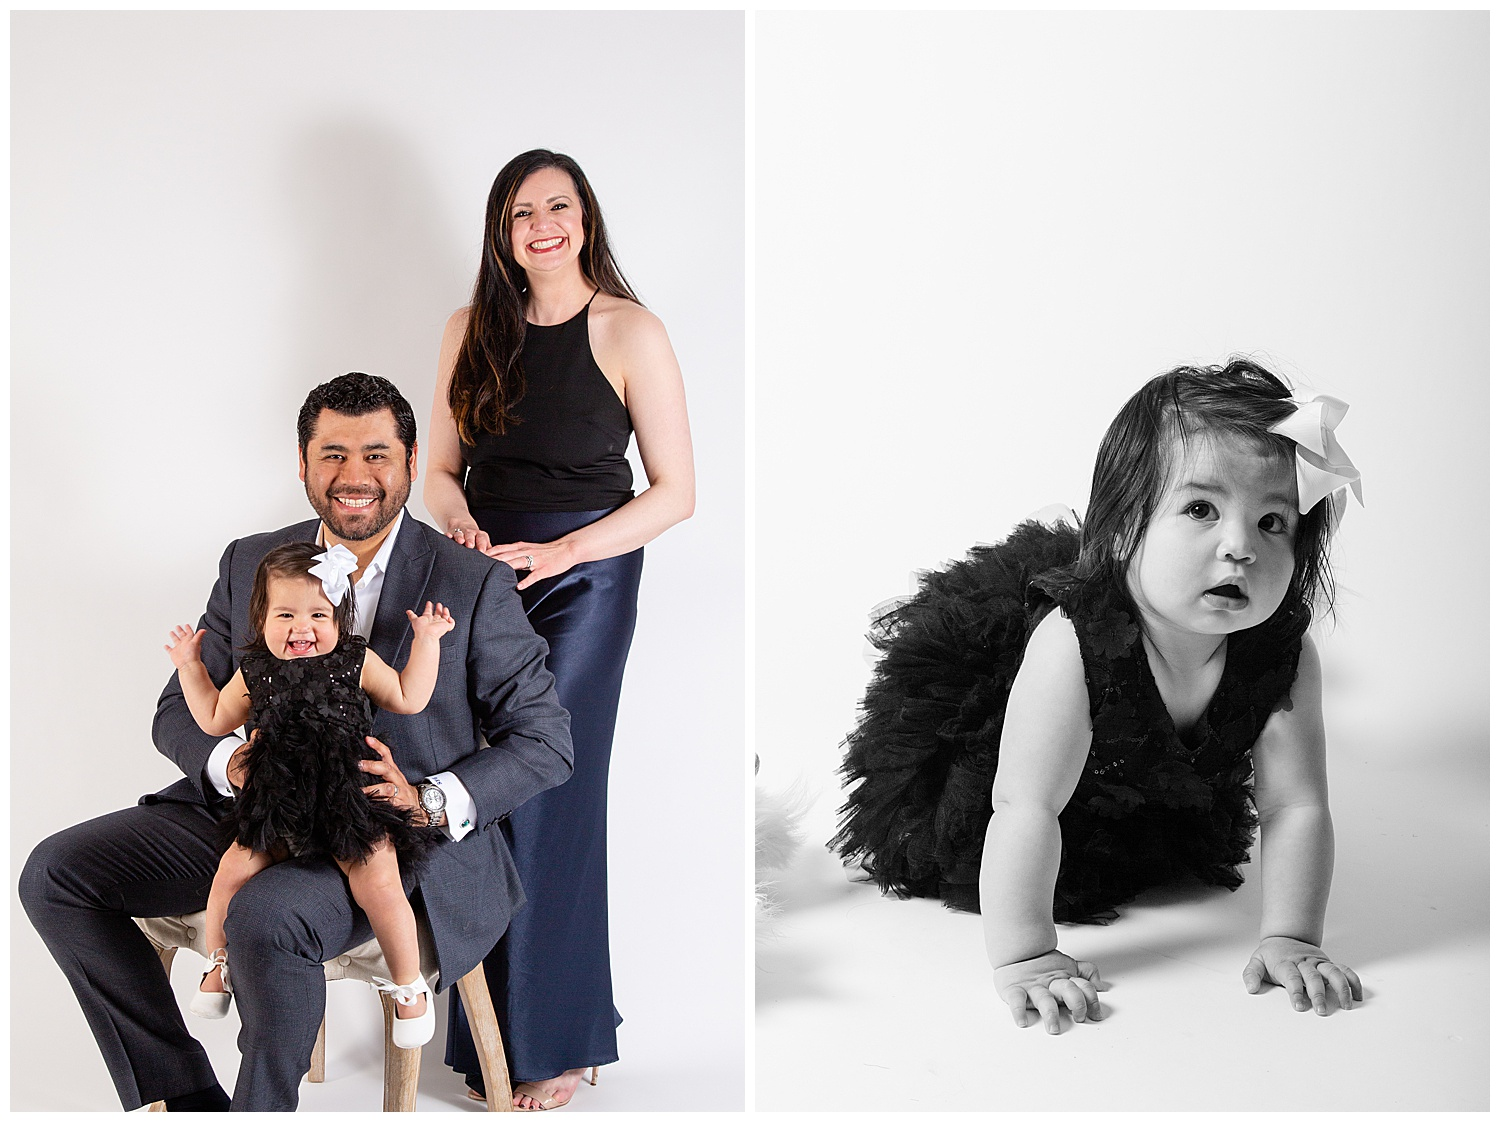 emily-belson-photography-dc-family-photographer-03.jpg